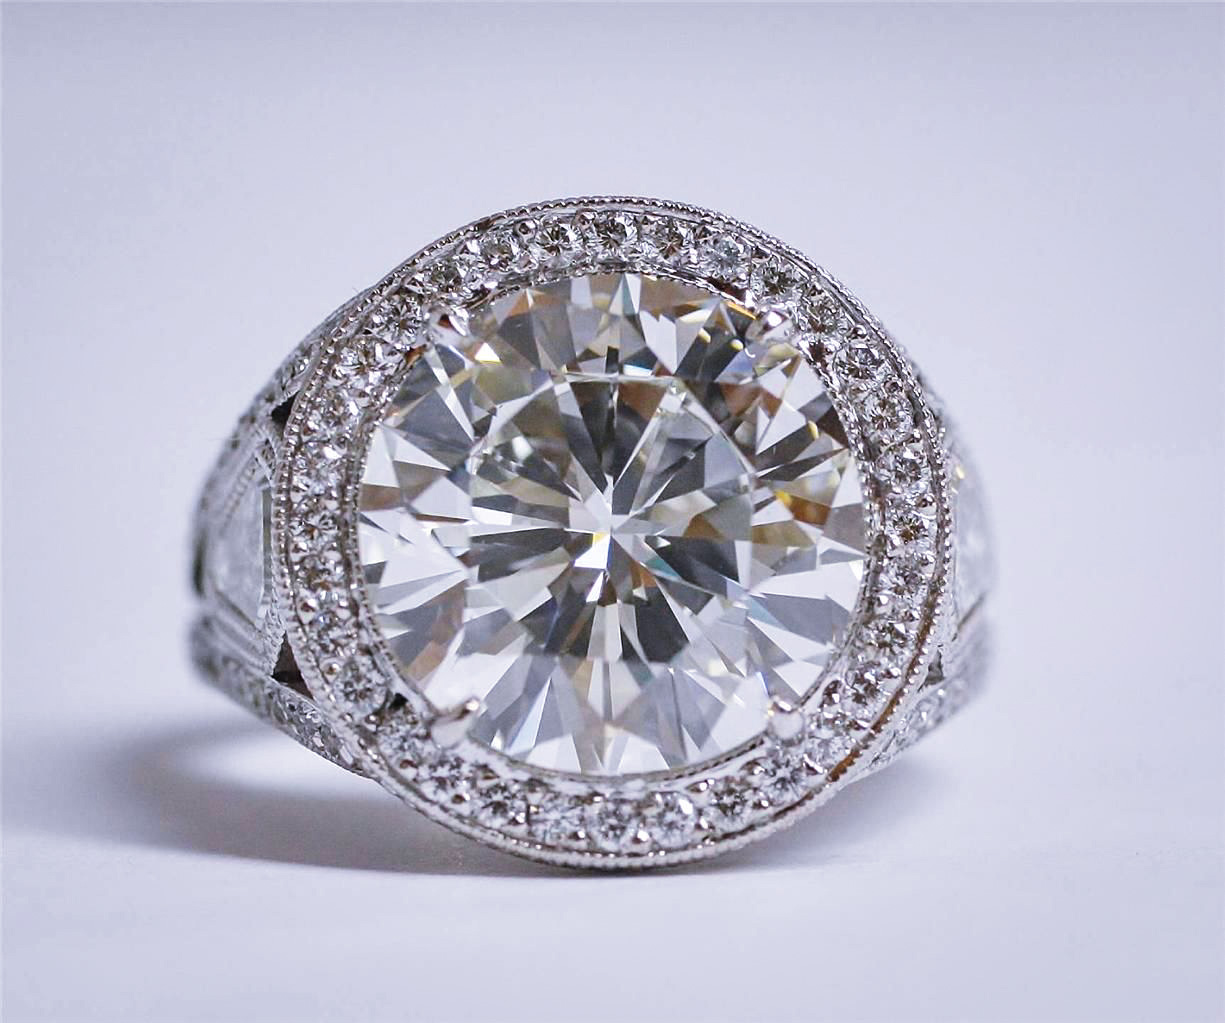 rated brides rings uk bazaar the of chopard engagement top best ring news original